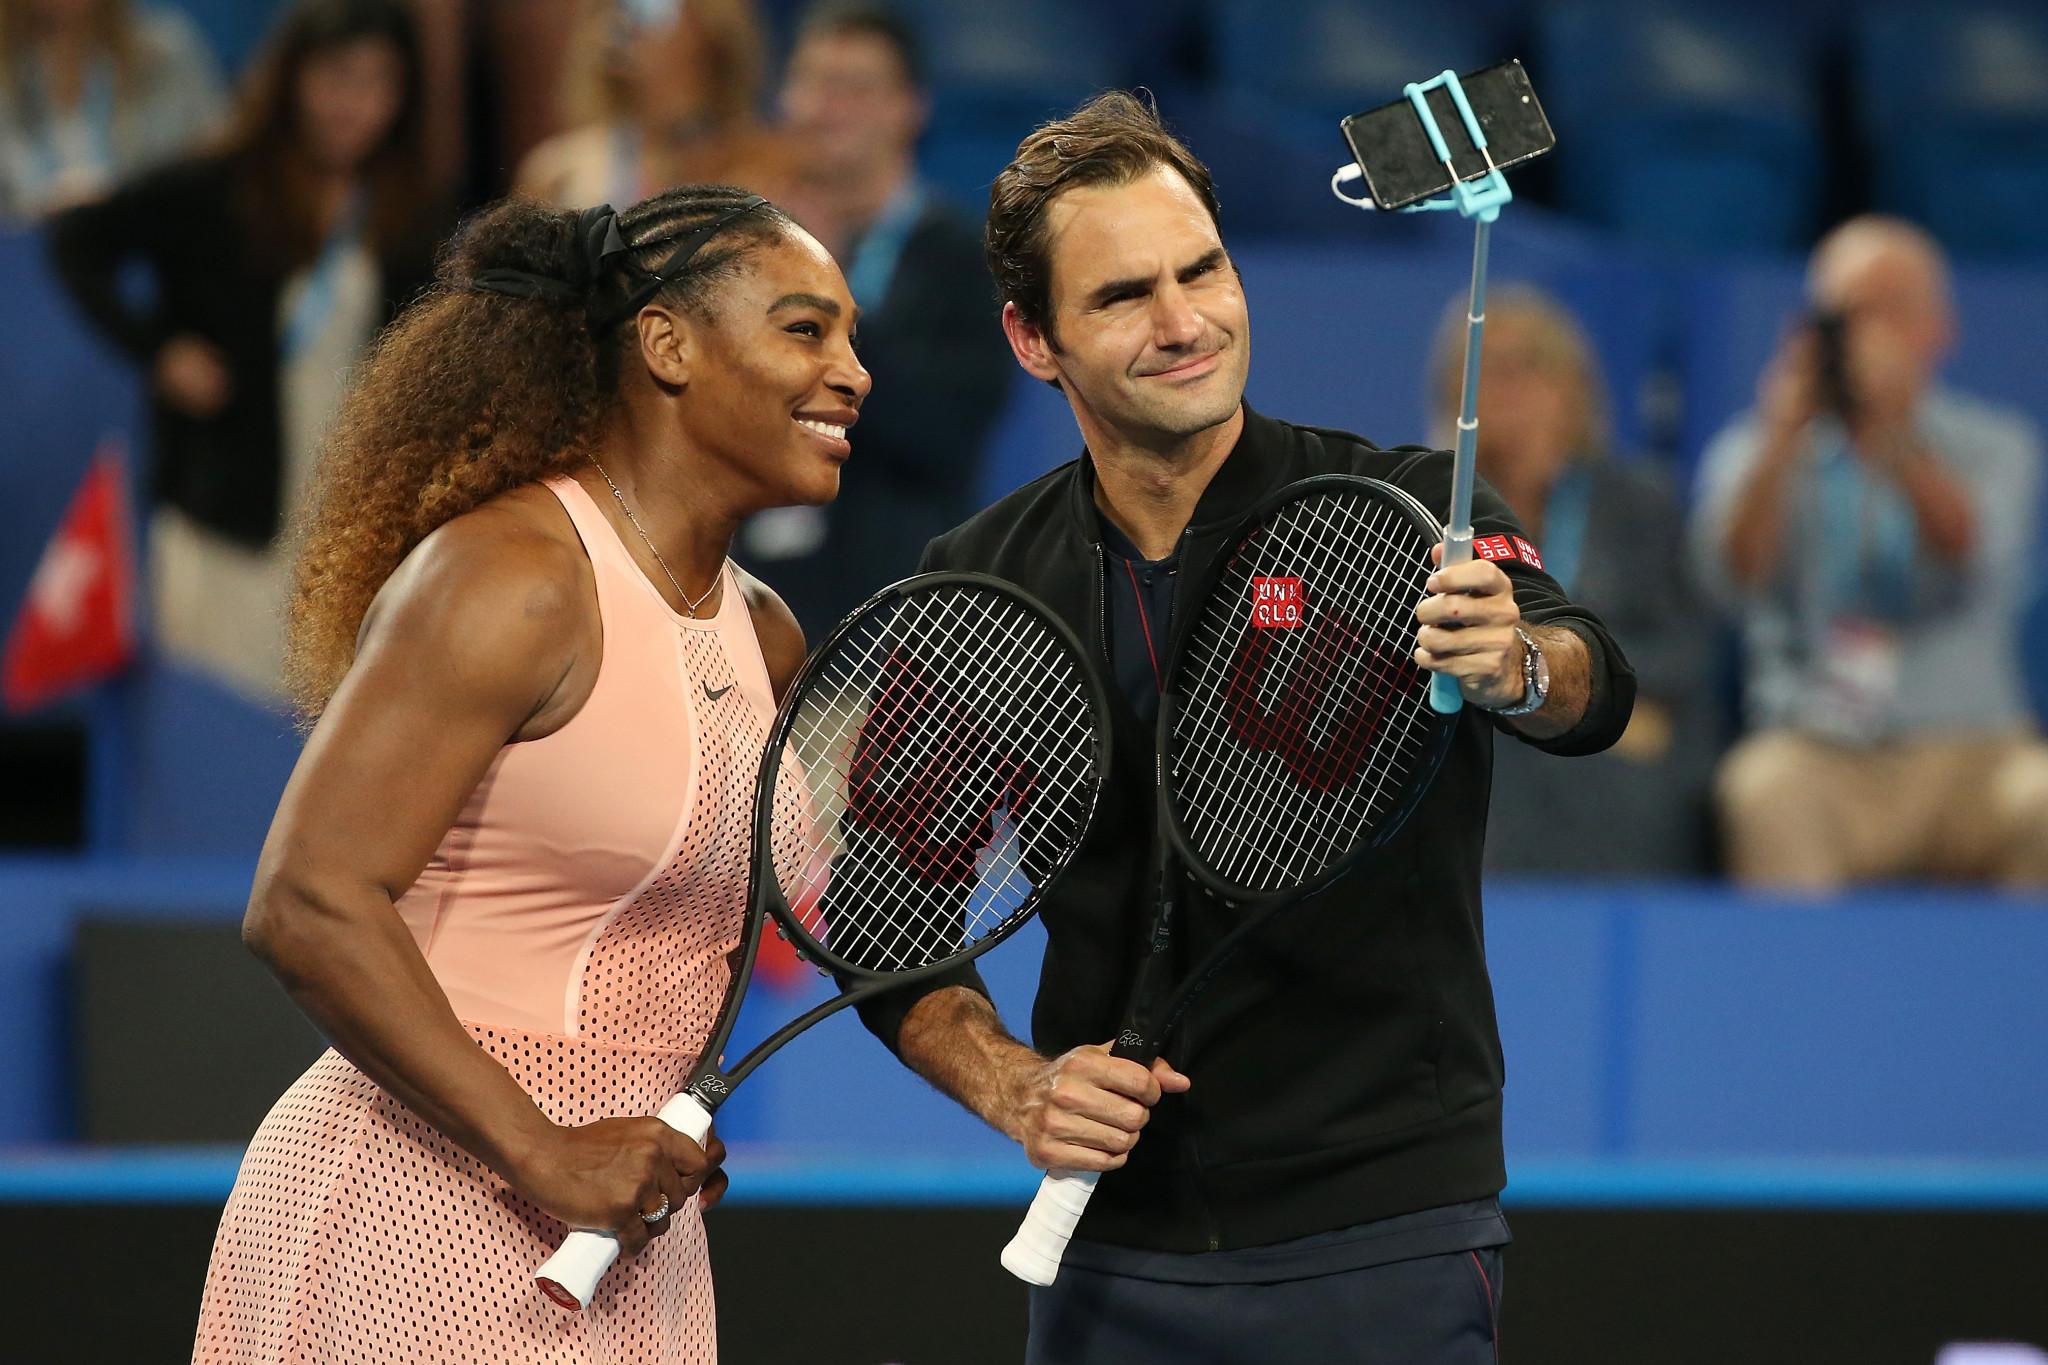 Roger Federer and Serena Williams played against each other for the first time today at the Hopman Cup in Perth ©Getty Images